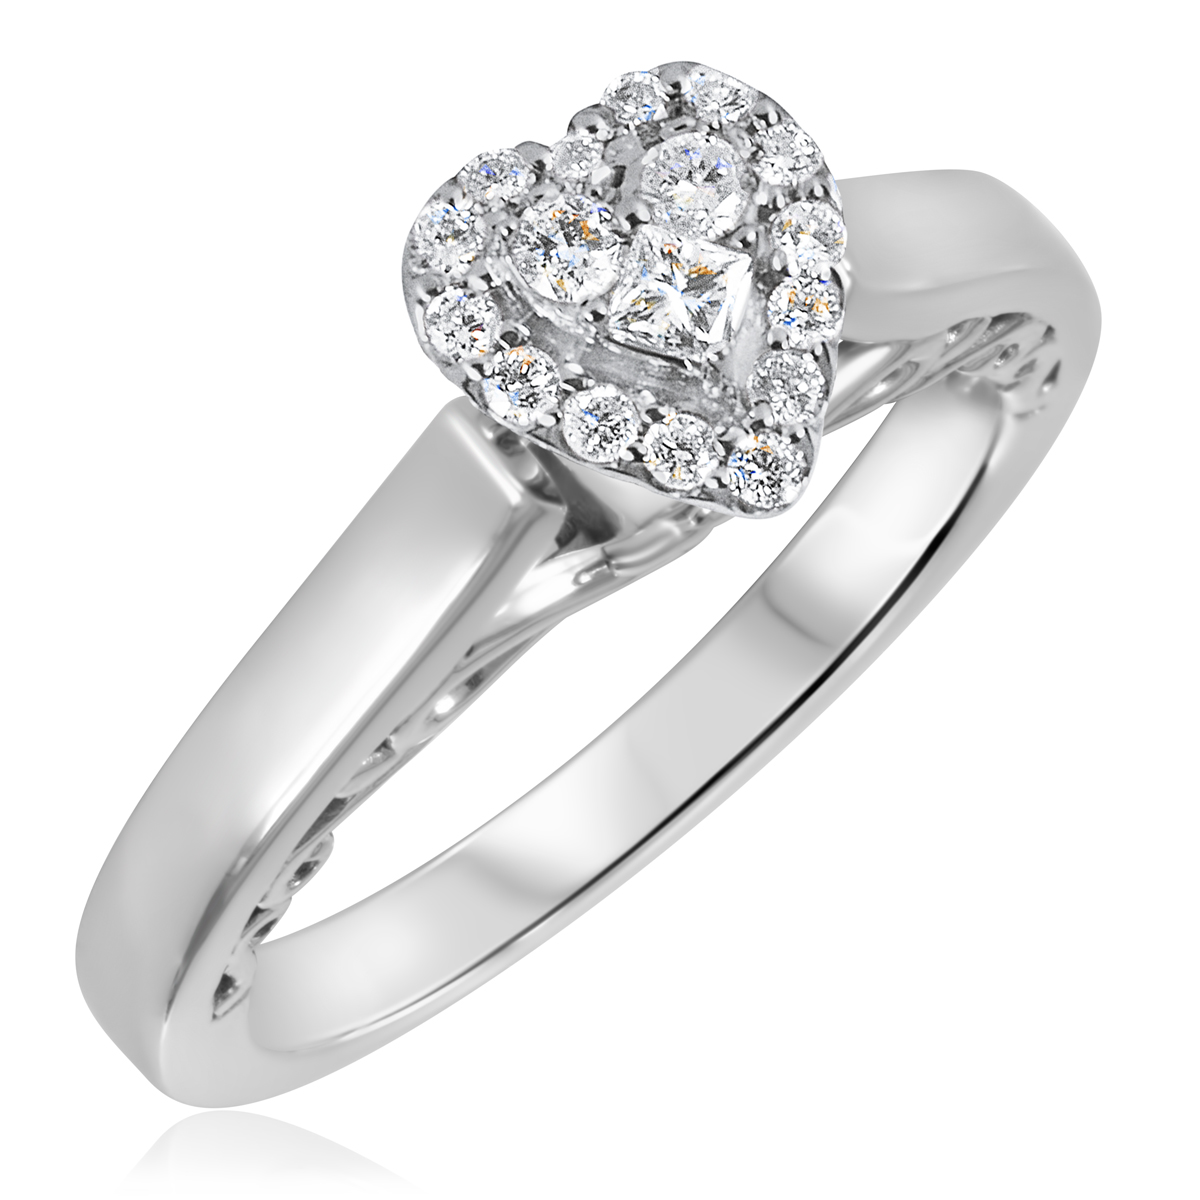 1/4 CT. T.W. Diamond Ladies Engagement Ring 14K White Gold- Size 8